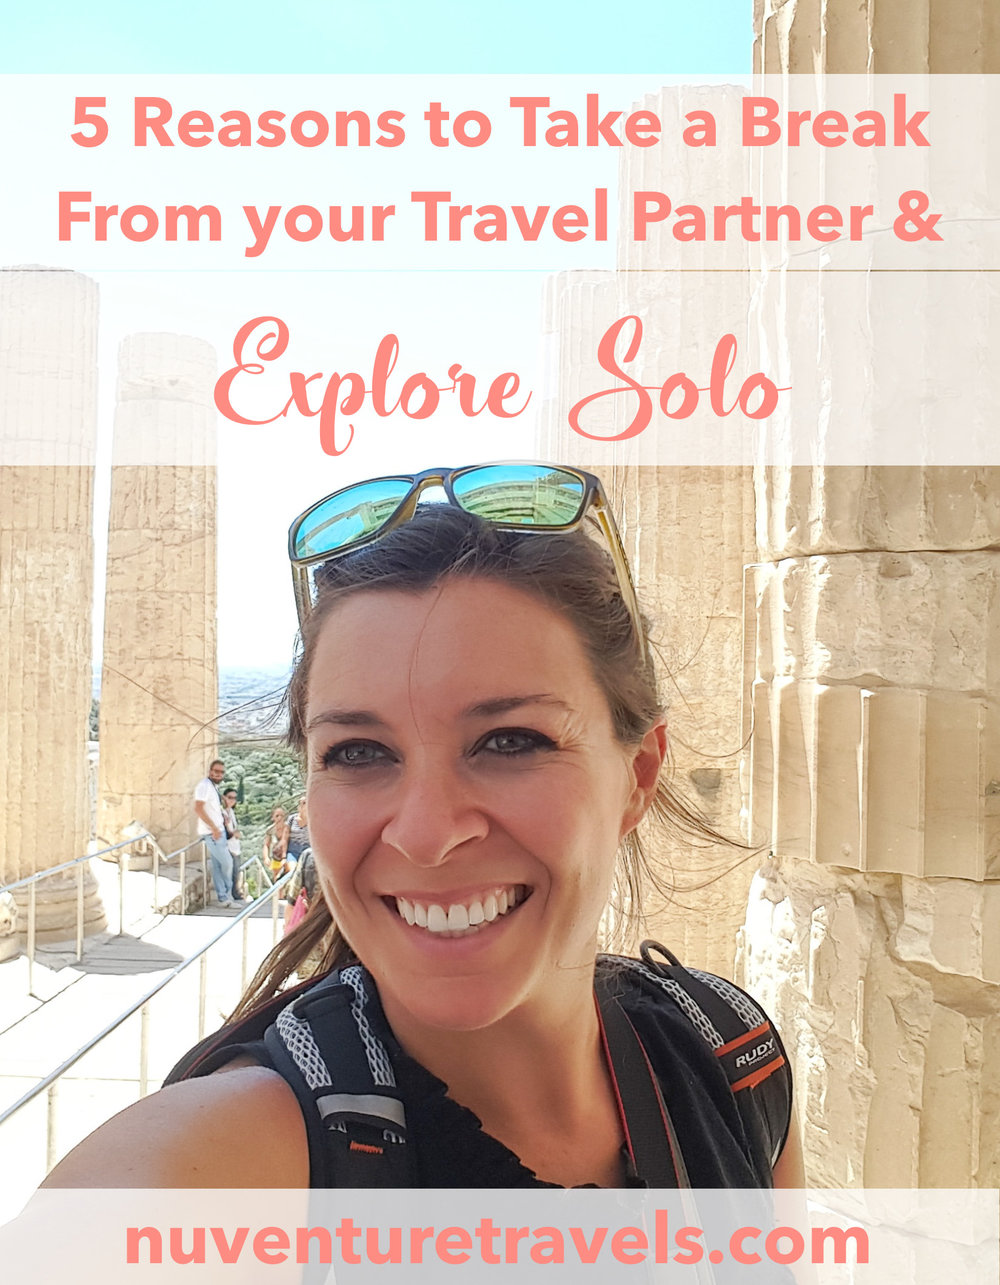 Should You Take a Break from Your Travel Partner and Explore Solo